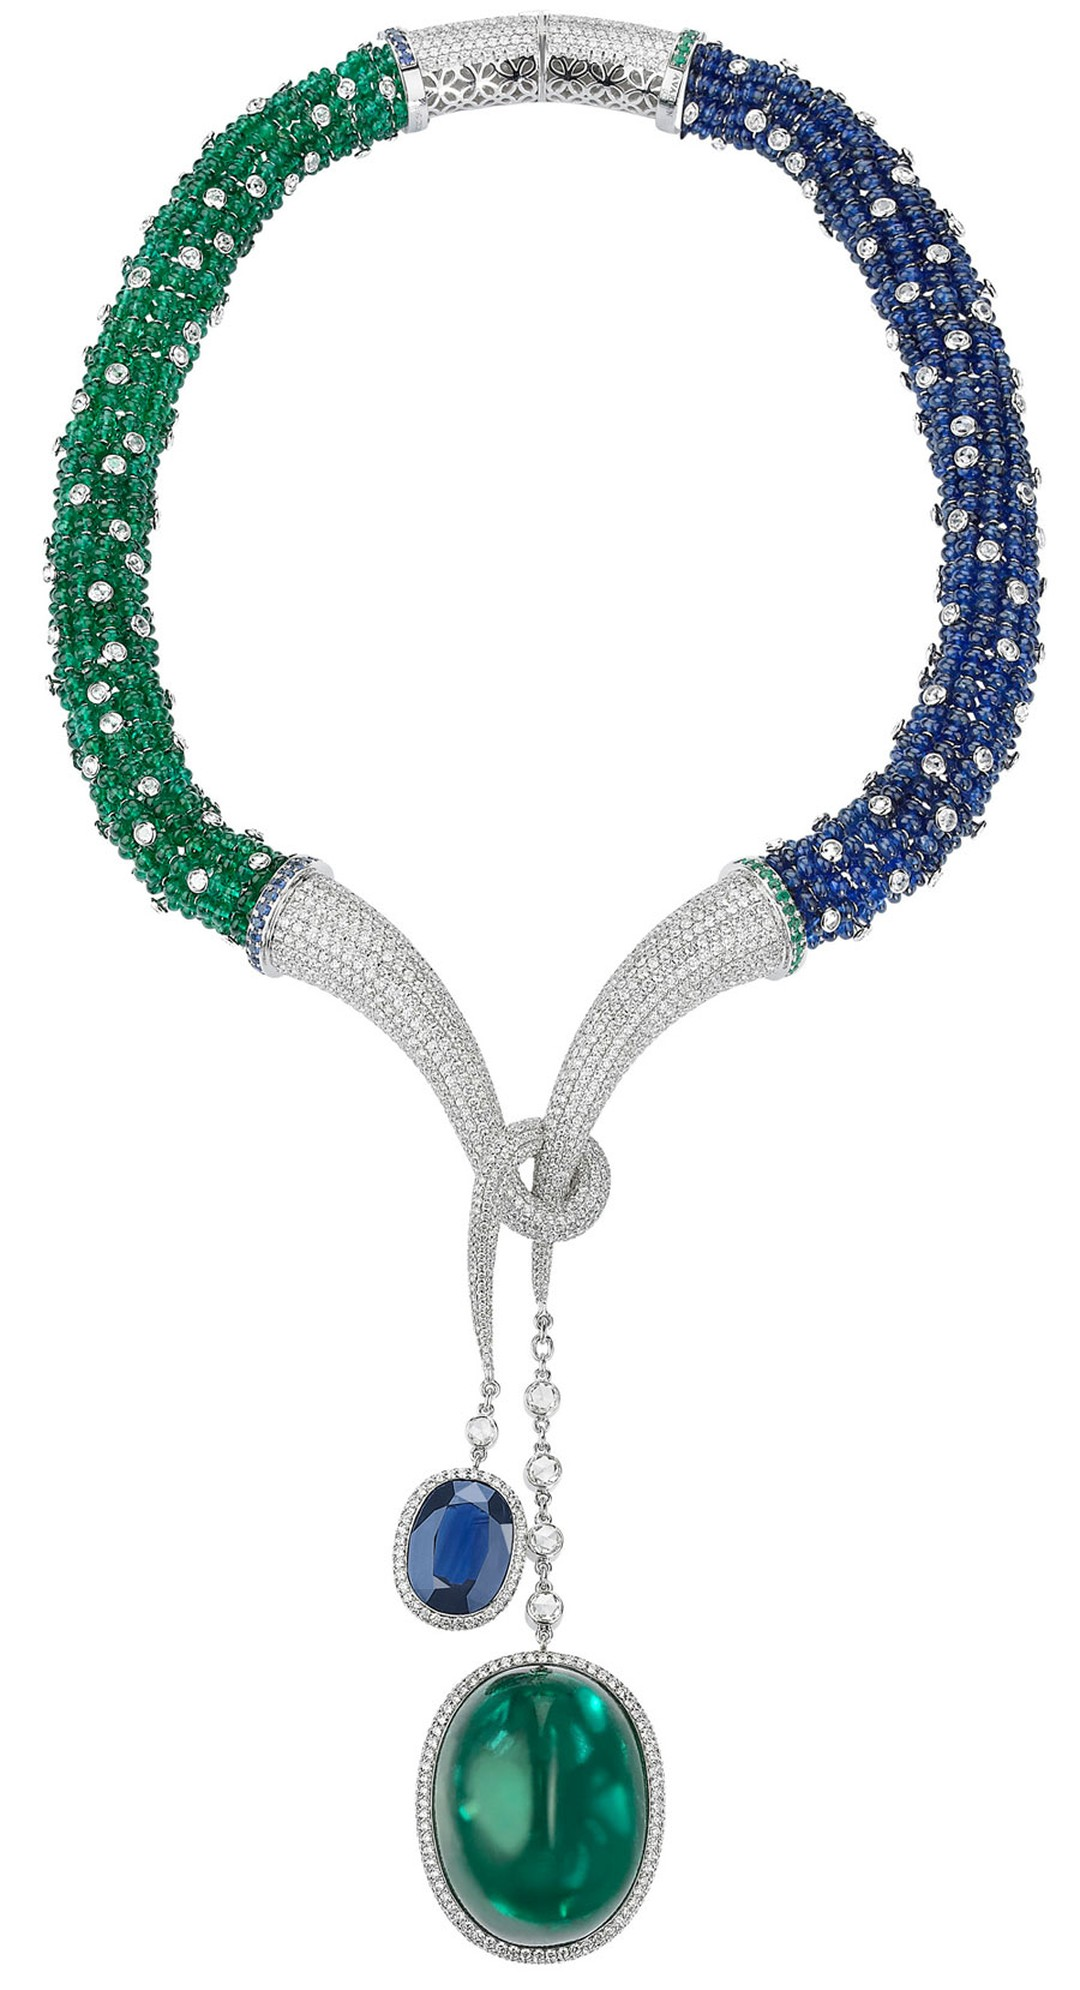 Avakian-Cabochon-Emerald-Necklace.jpg